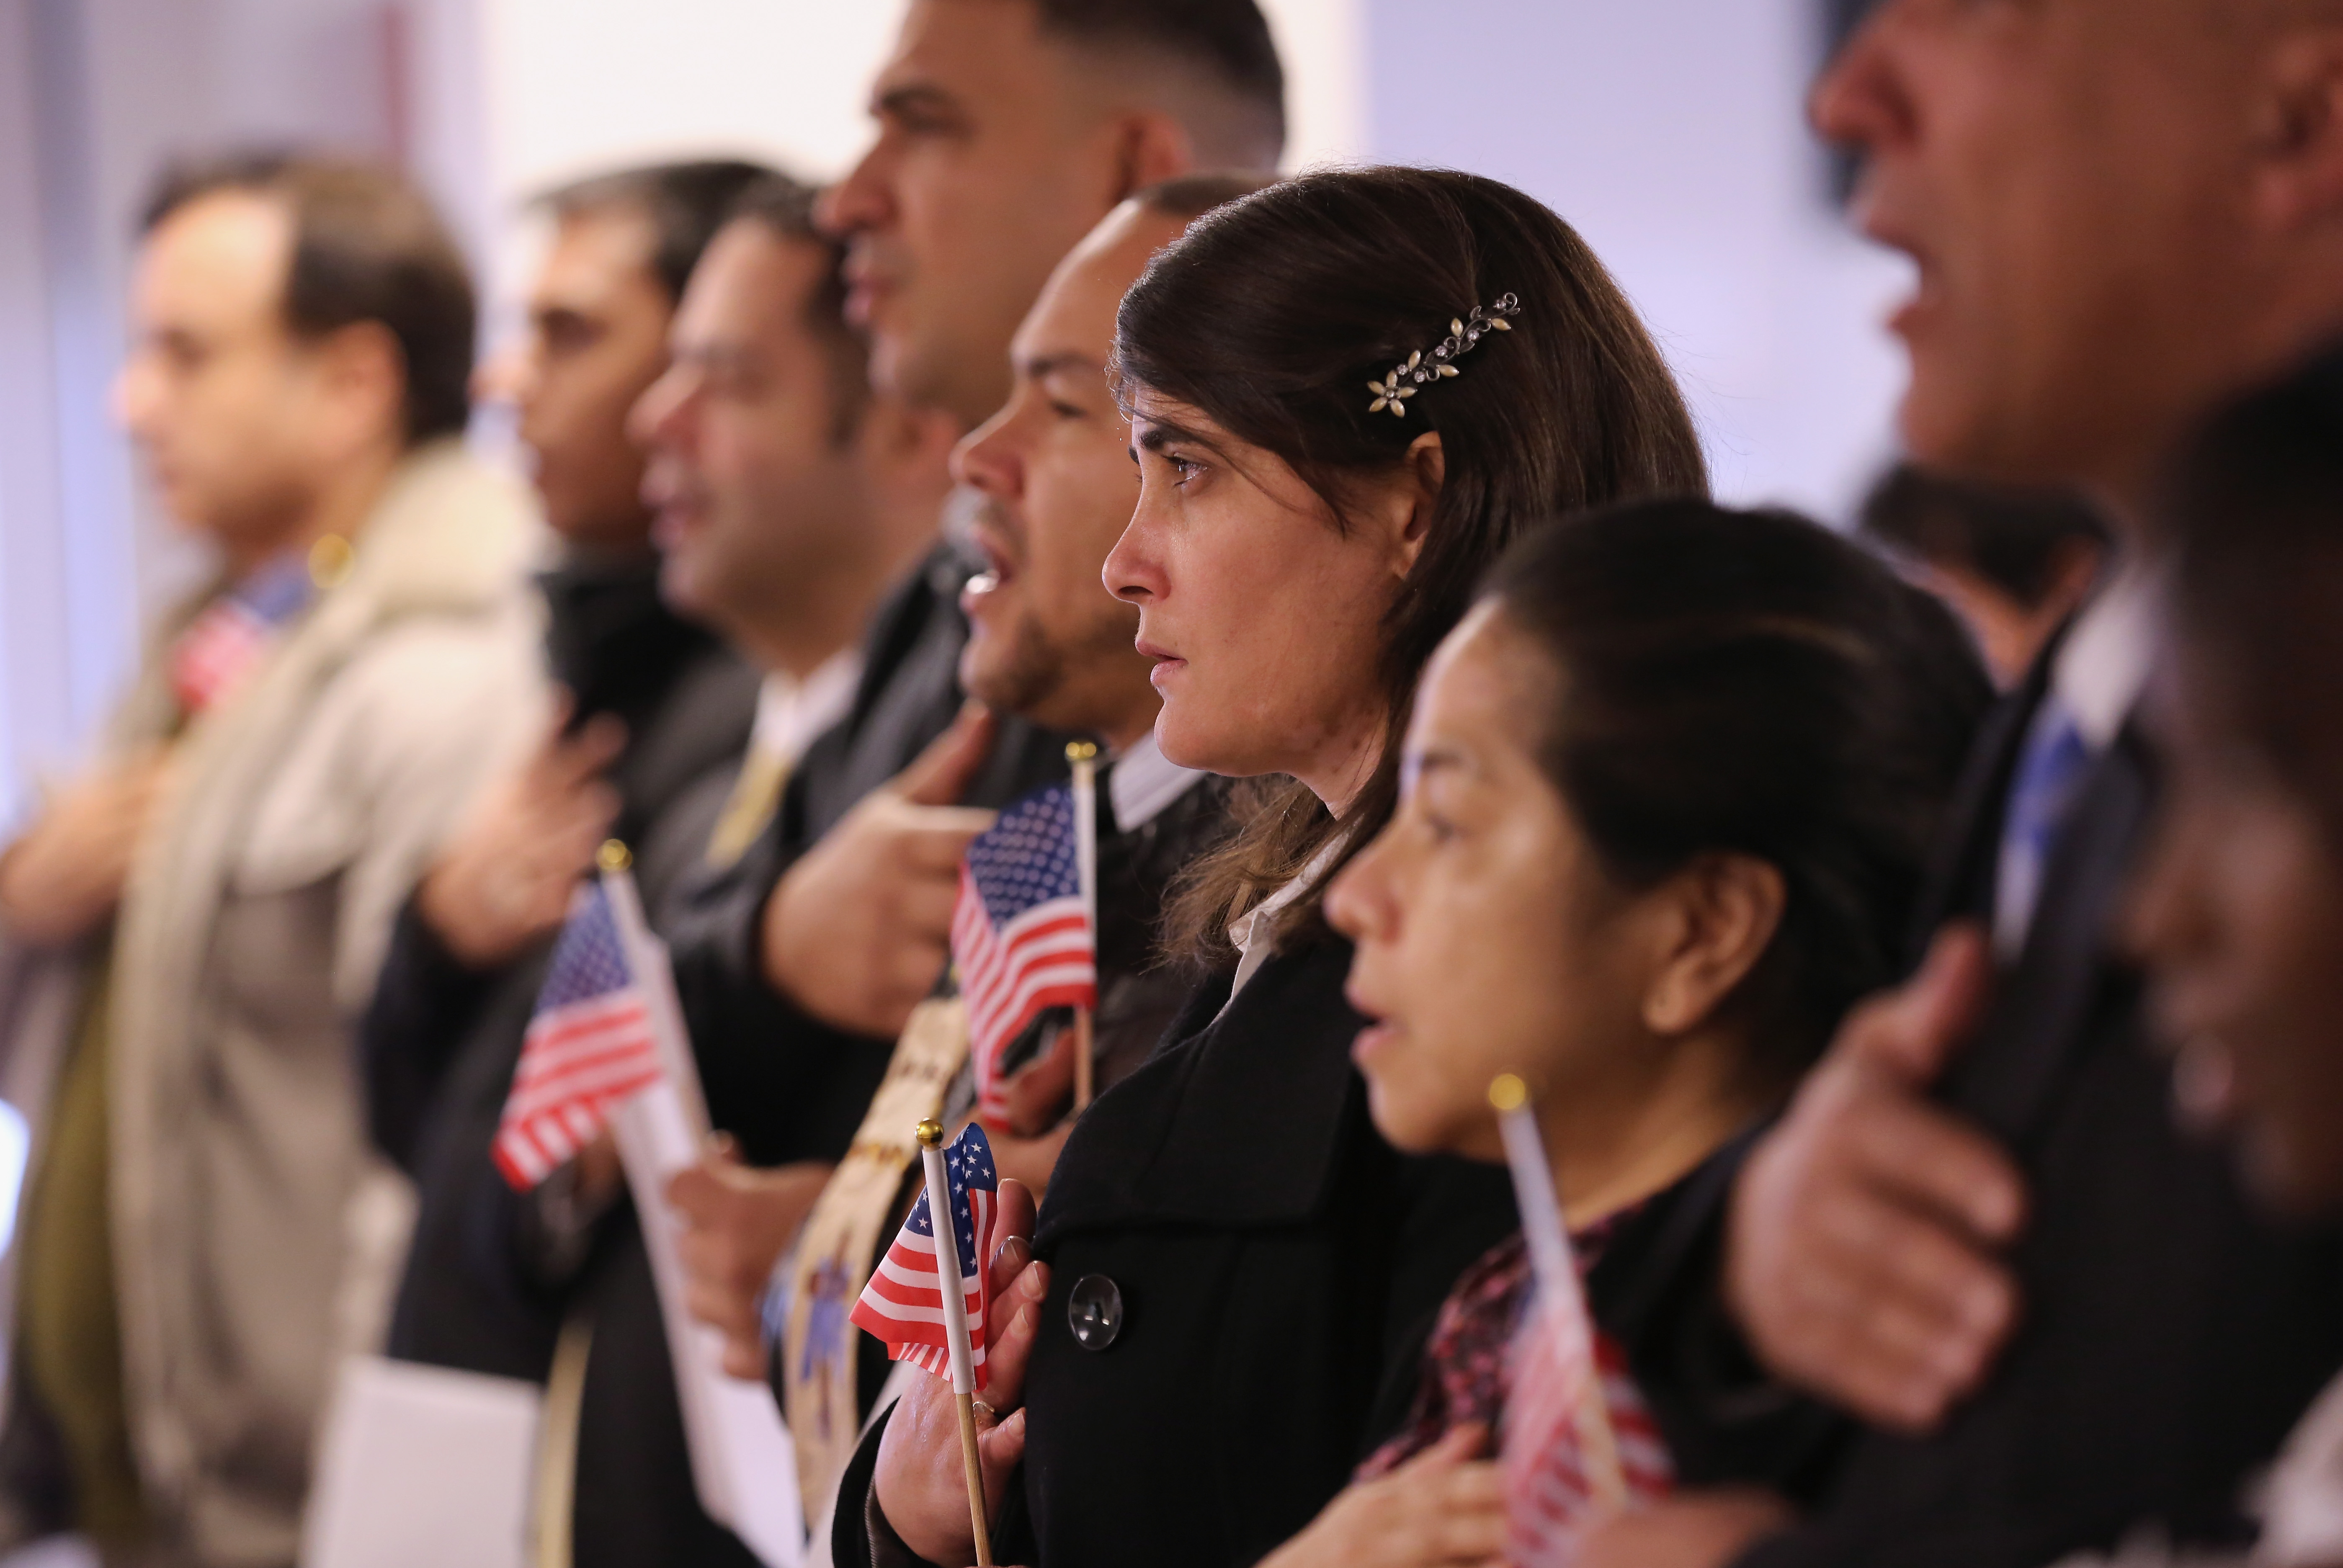 Immigrants take oath of citizenship to the United States on Nov. 20, 2014 in Newark, New Jersey.